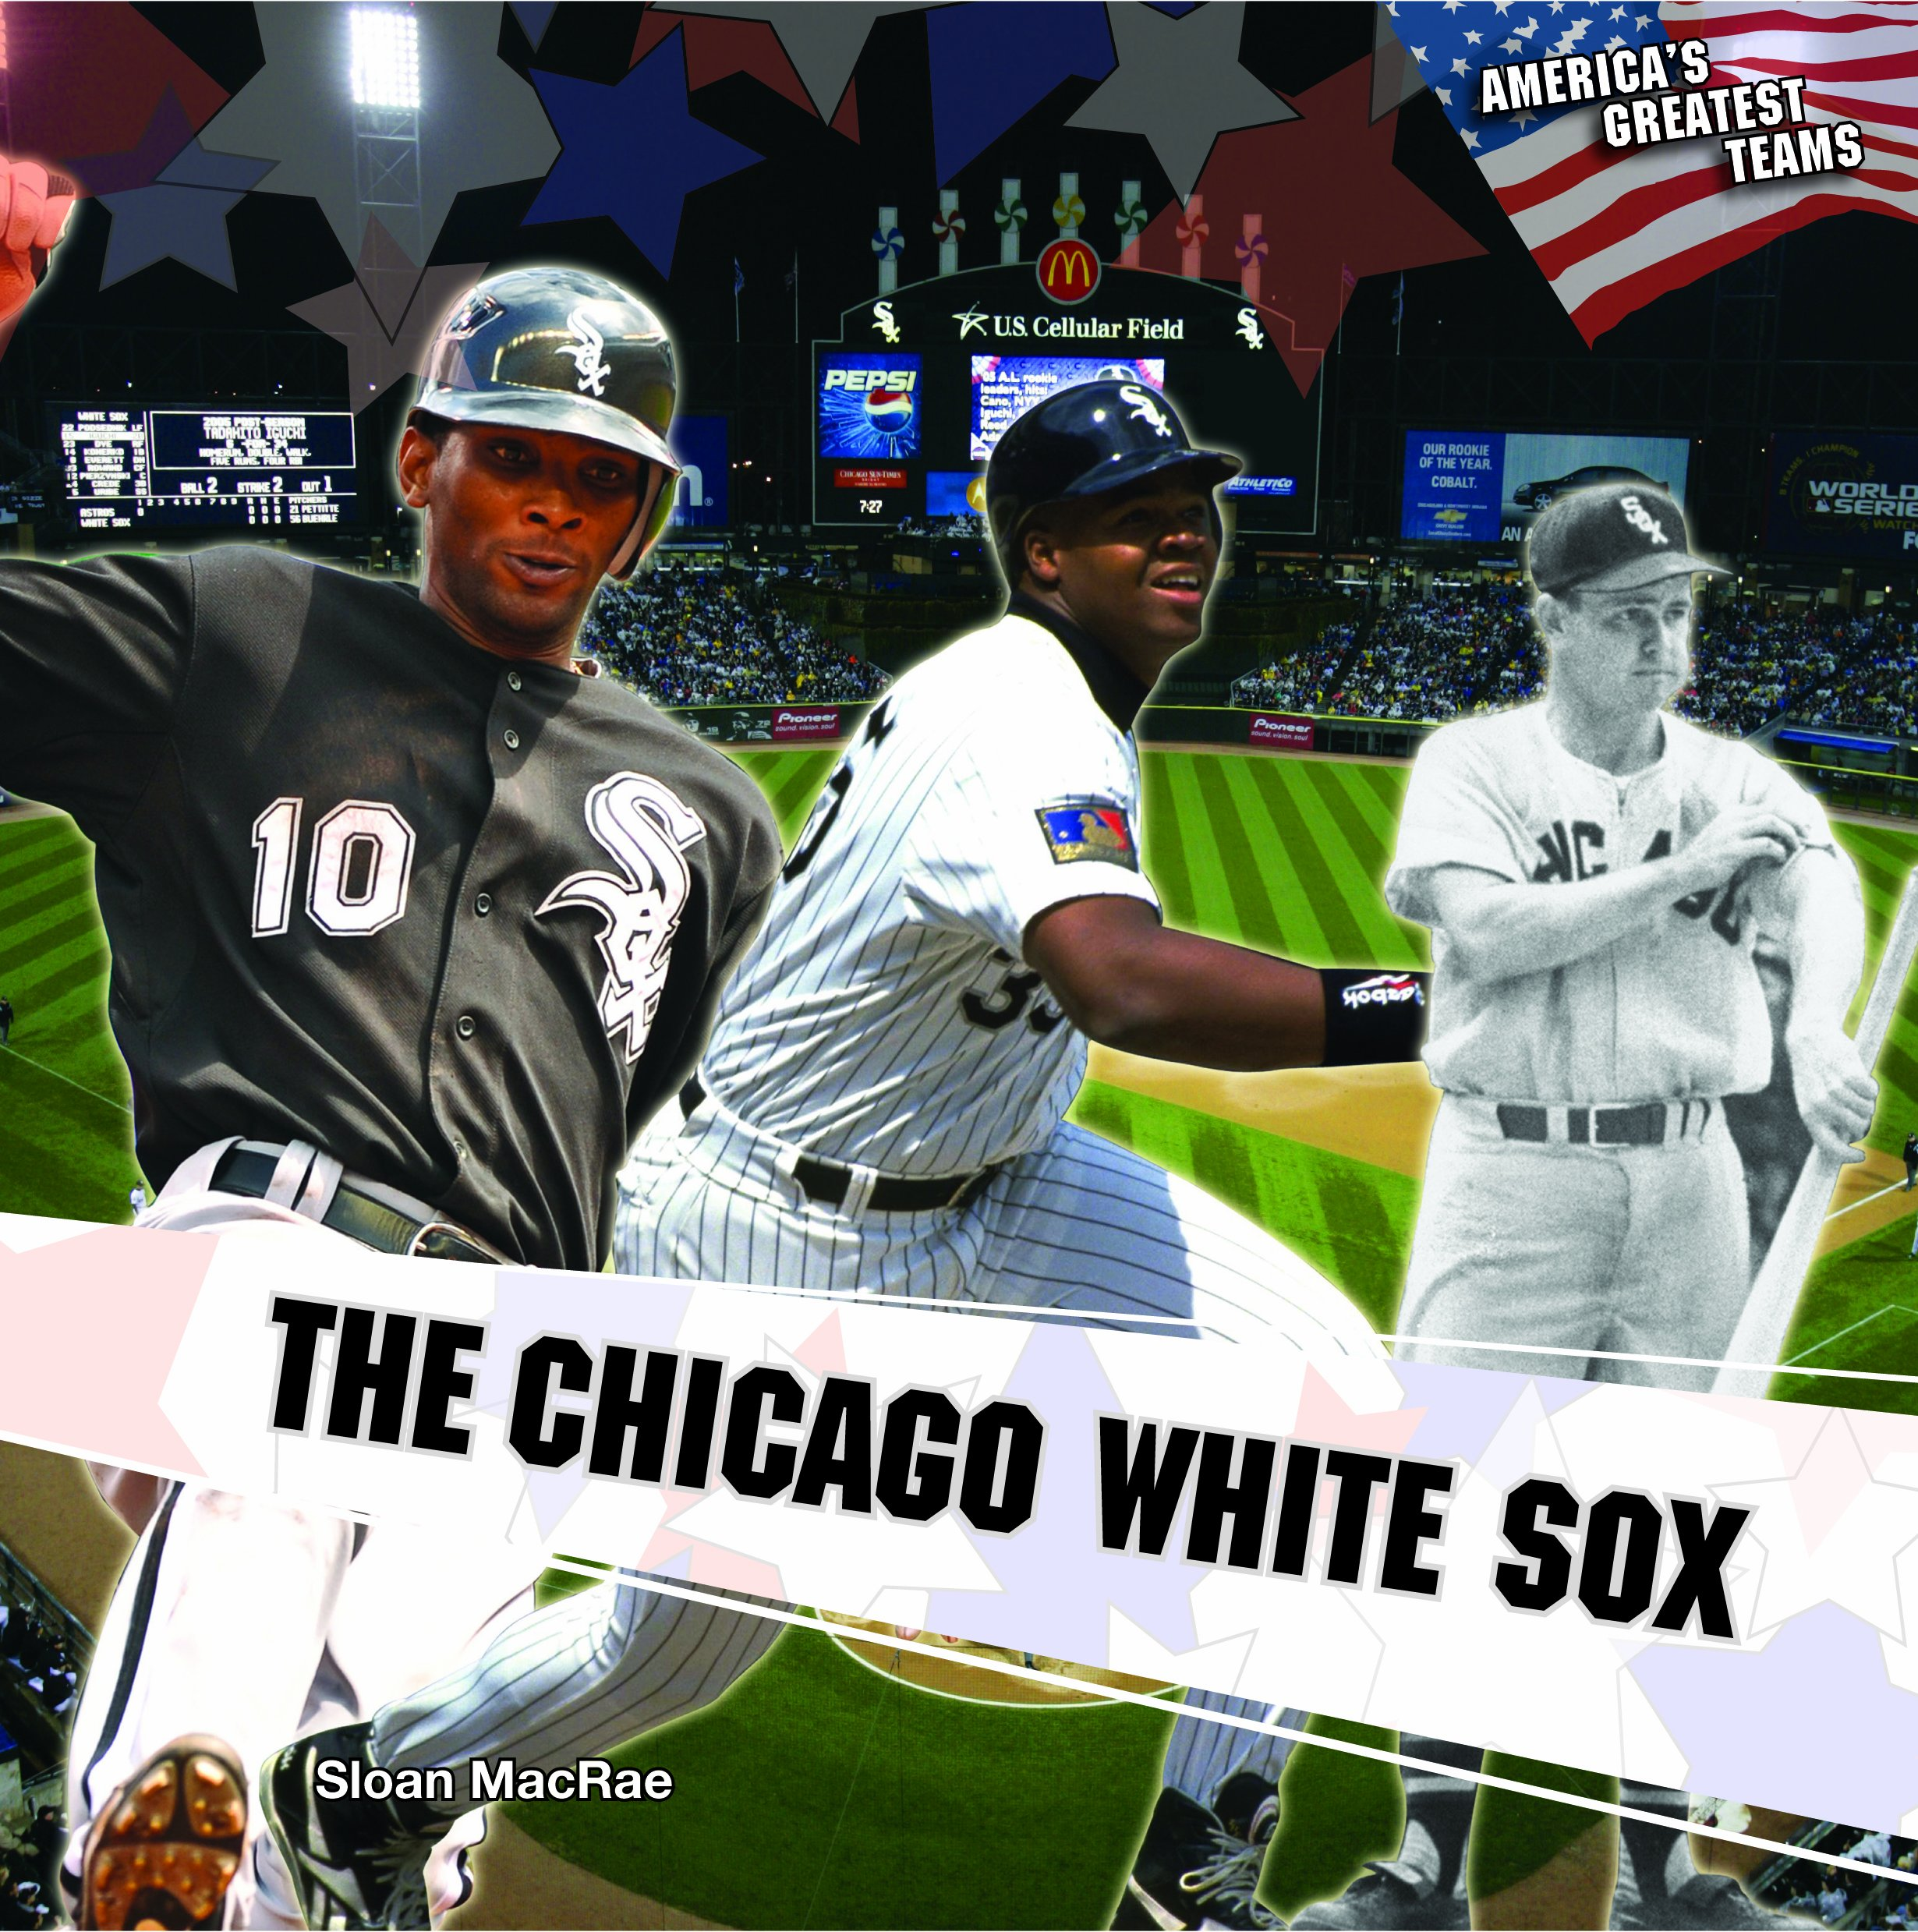 The Chicago White Sox (America's Greatest Teams (Library)) pdf